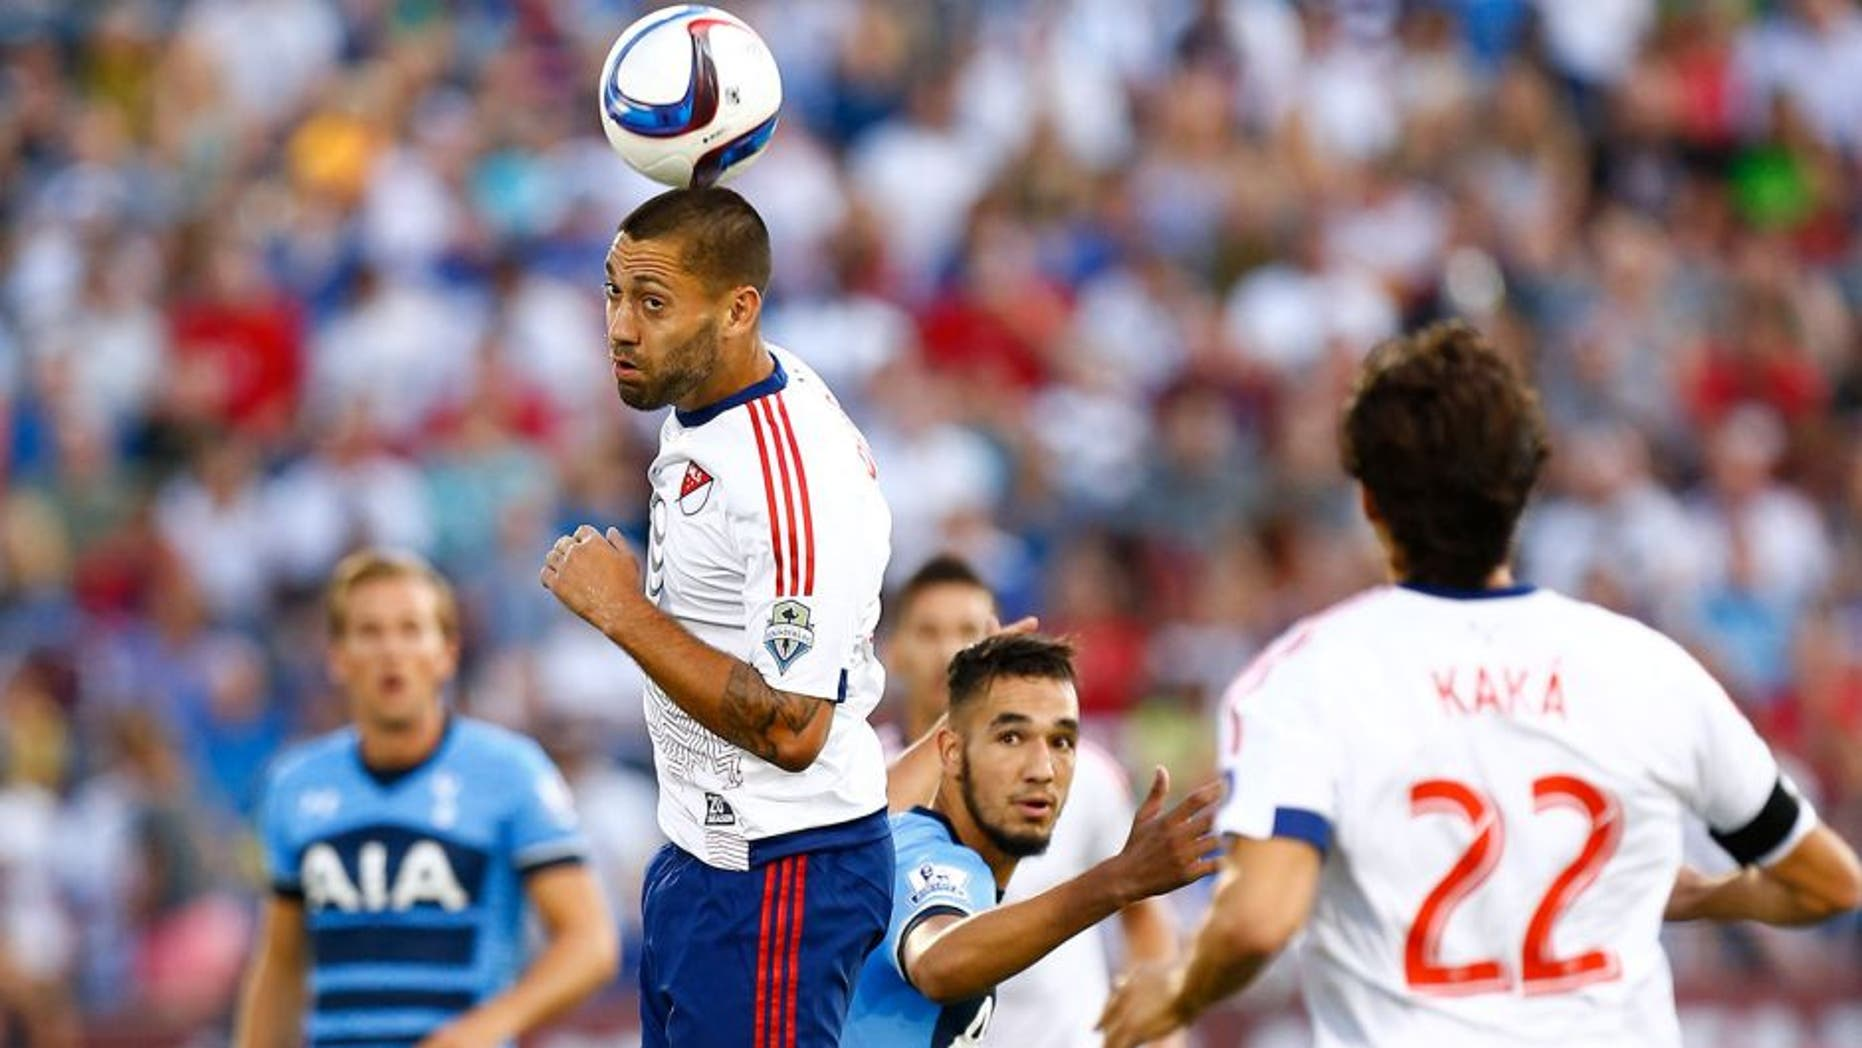 Jul 29, 2015; Denver, CO, USA; MLS All Stars forward Clint Dempsey (2) of the Seattle Sounders FC heads the ball during the first half of the 2015 MLS All Star Game against the Tottenham Hotspur at Dick's Sporting Goods Park. Mandatory Credit: Isaiah J. Downing-USA TODAY Sports